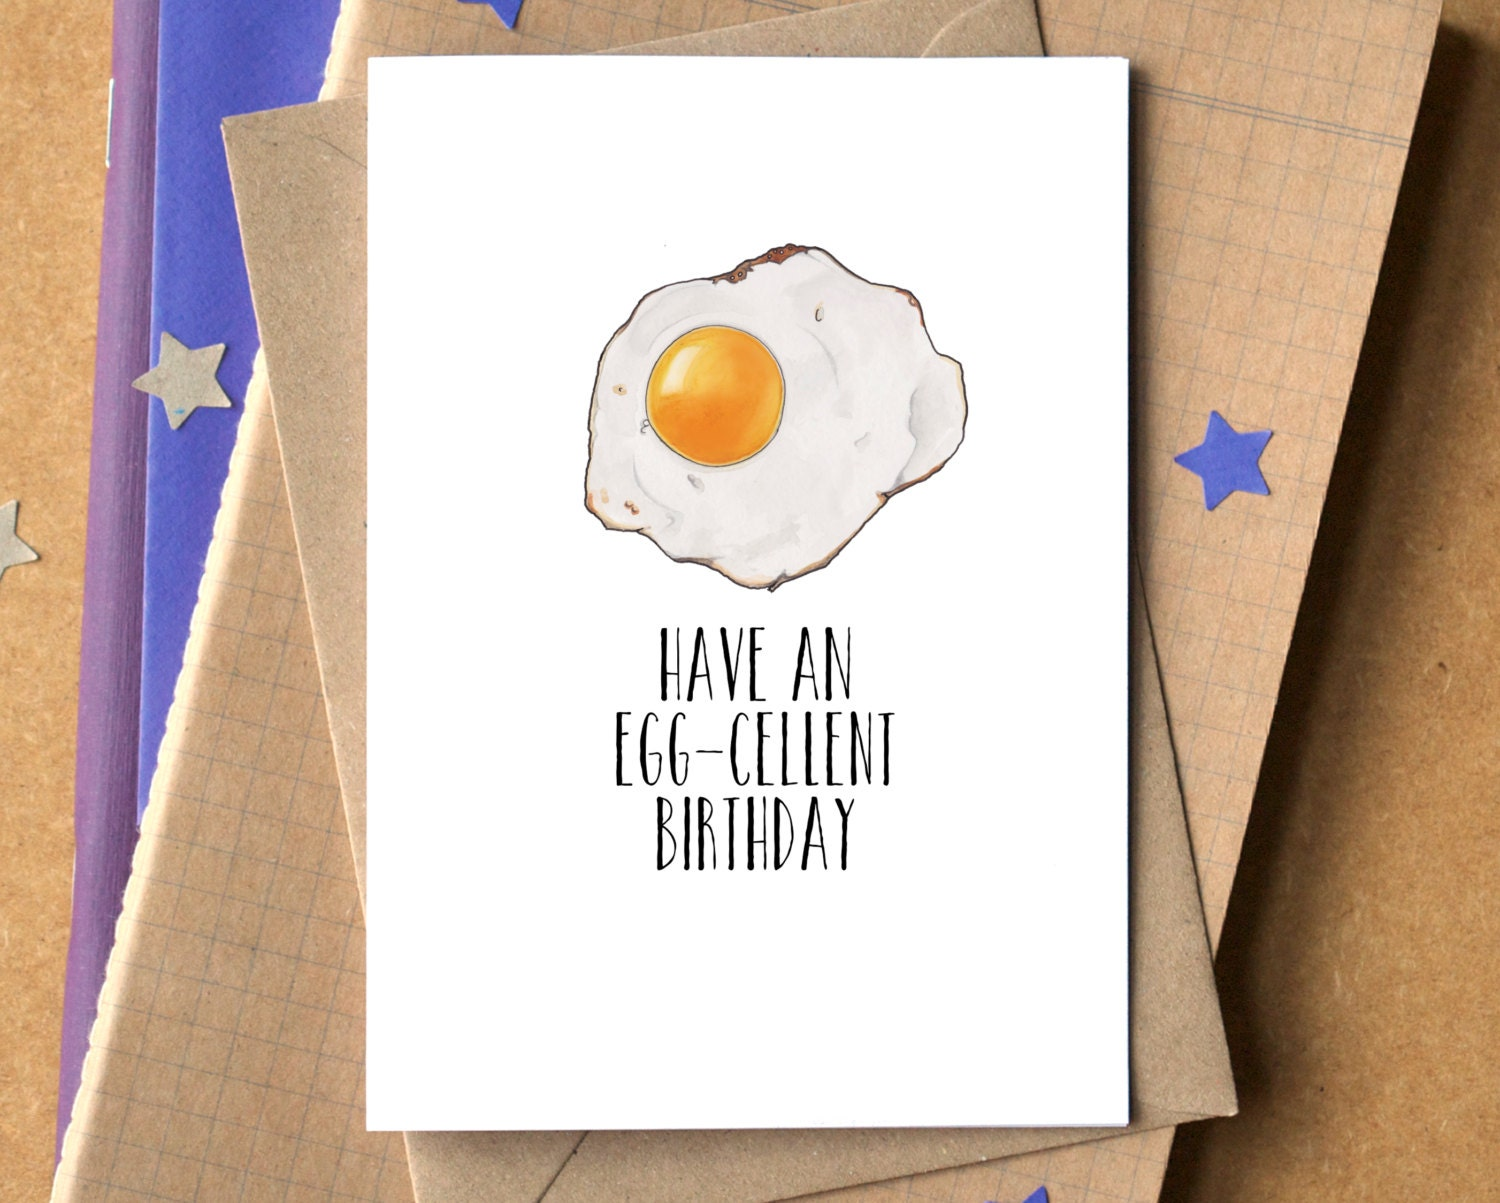 Have an egg cellent birthday card funny birthday card zoom bookmarktalkfo Choice Image